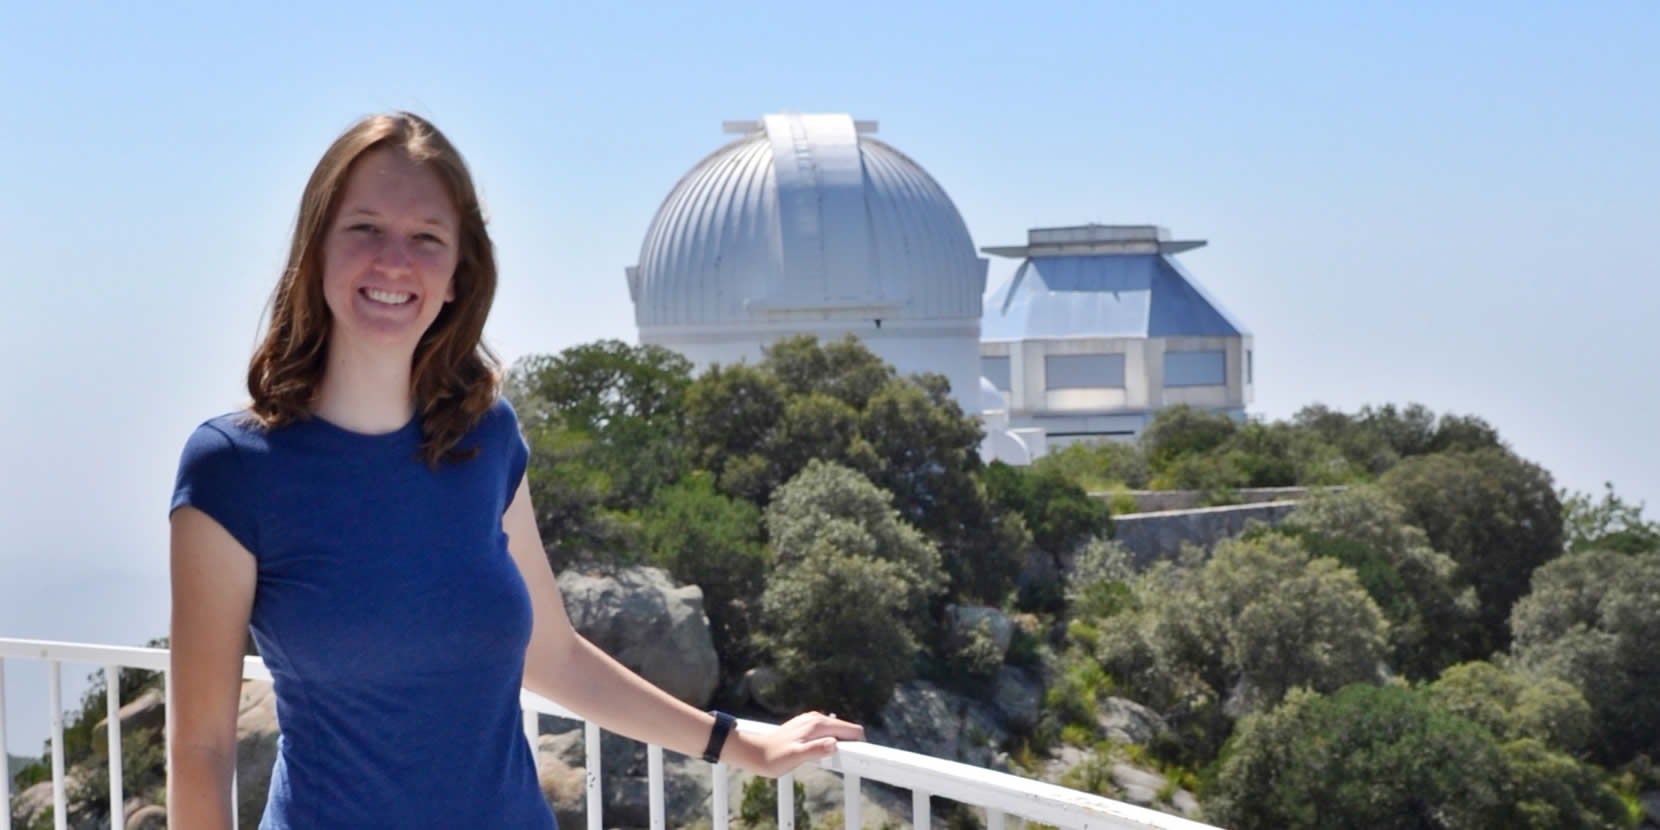 Melissa Haegert Dykhuis is studying at the Lunar and Planetary Laboratory at the University of Arizona.